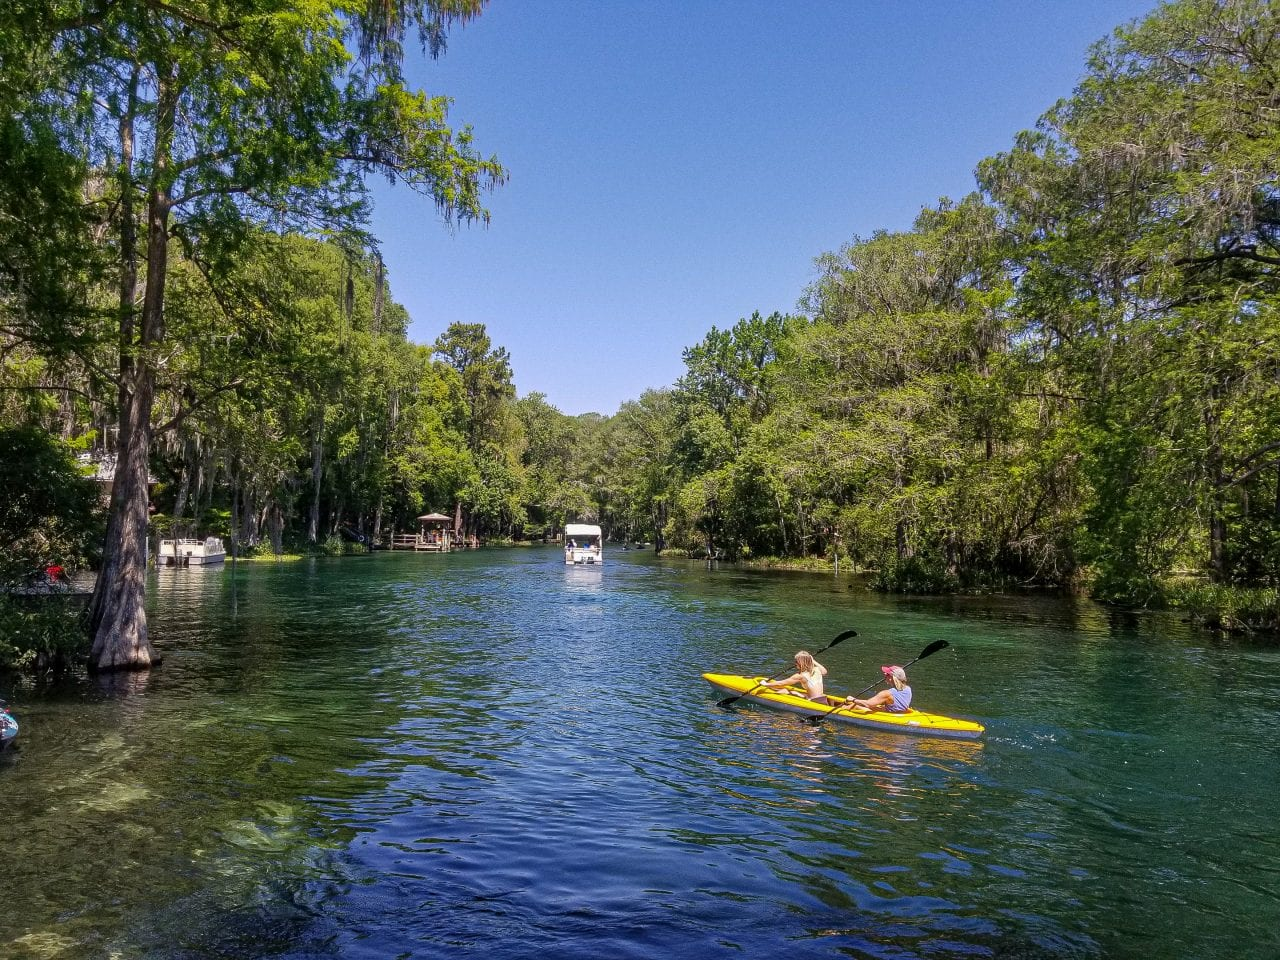 Views of kayaking from Swampy's on the Rainbow River